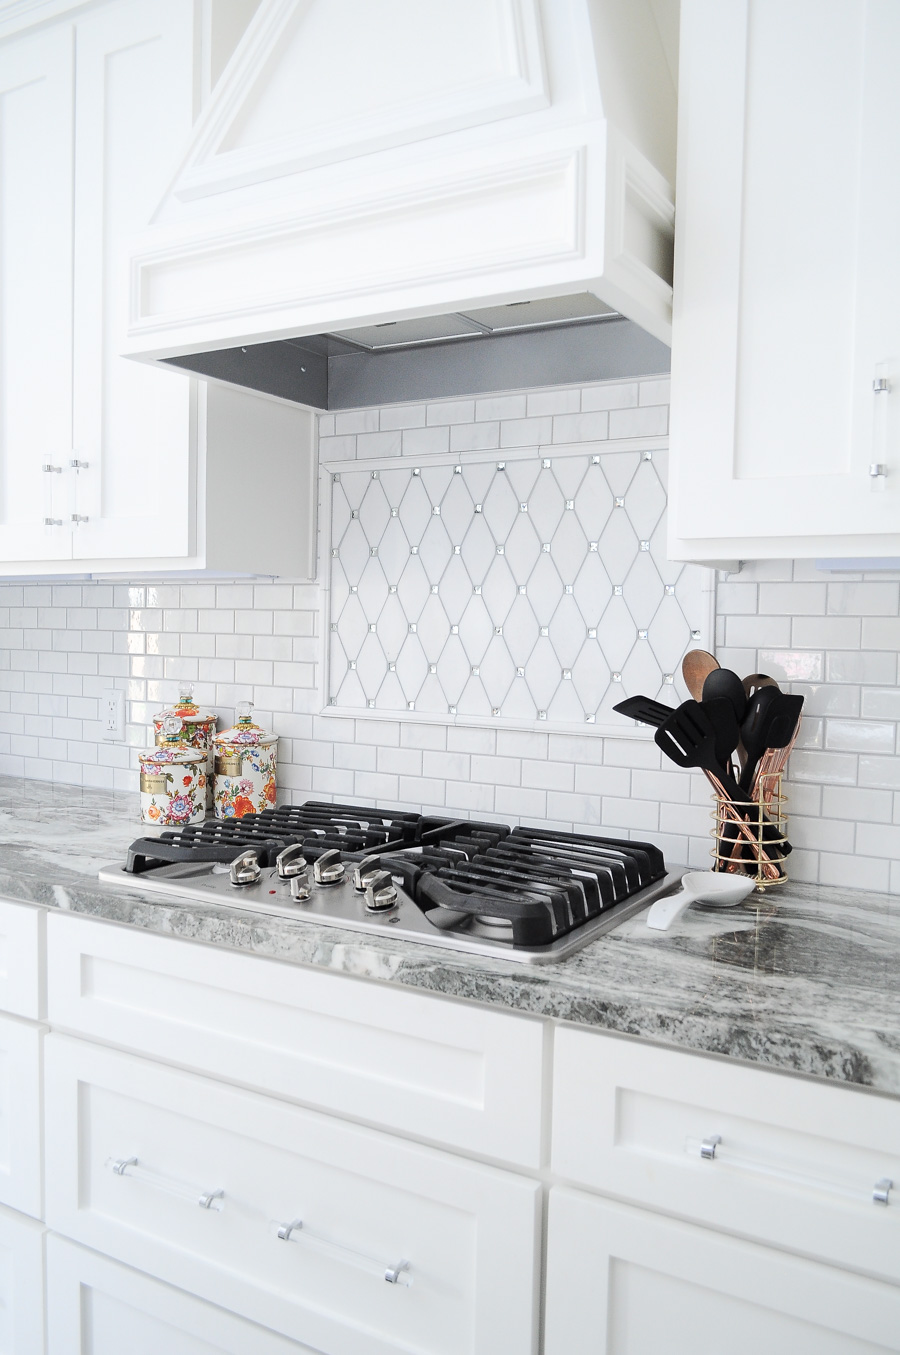 Tile Bar thassos tile paired with a marble subway backsplash, gray marbled counters, lucite drawer and cabinet pulls.